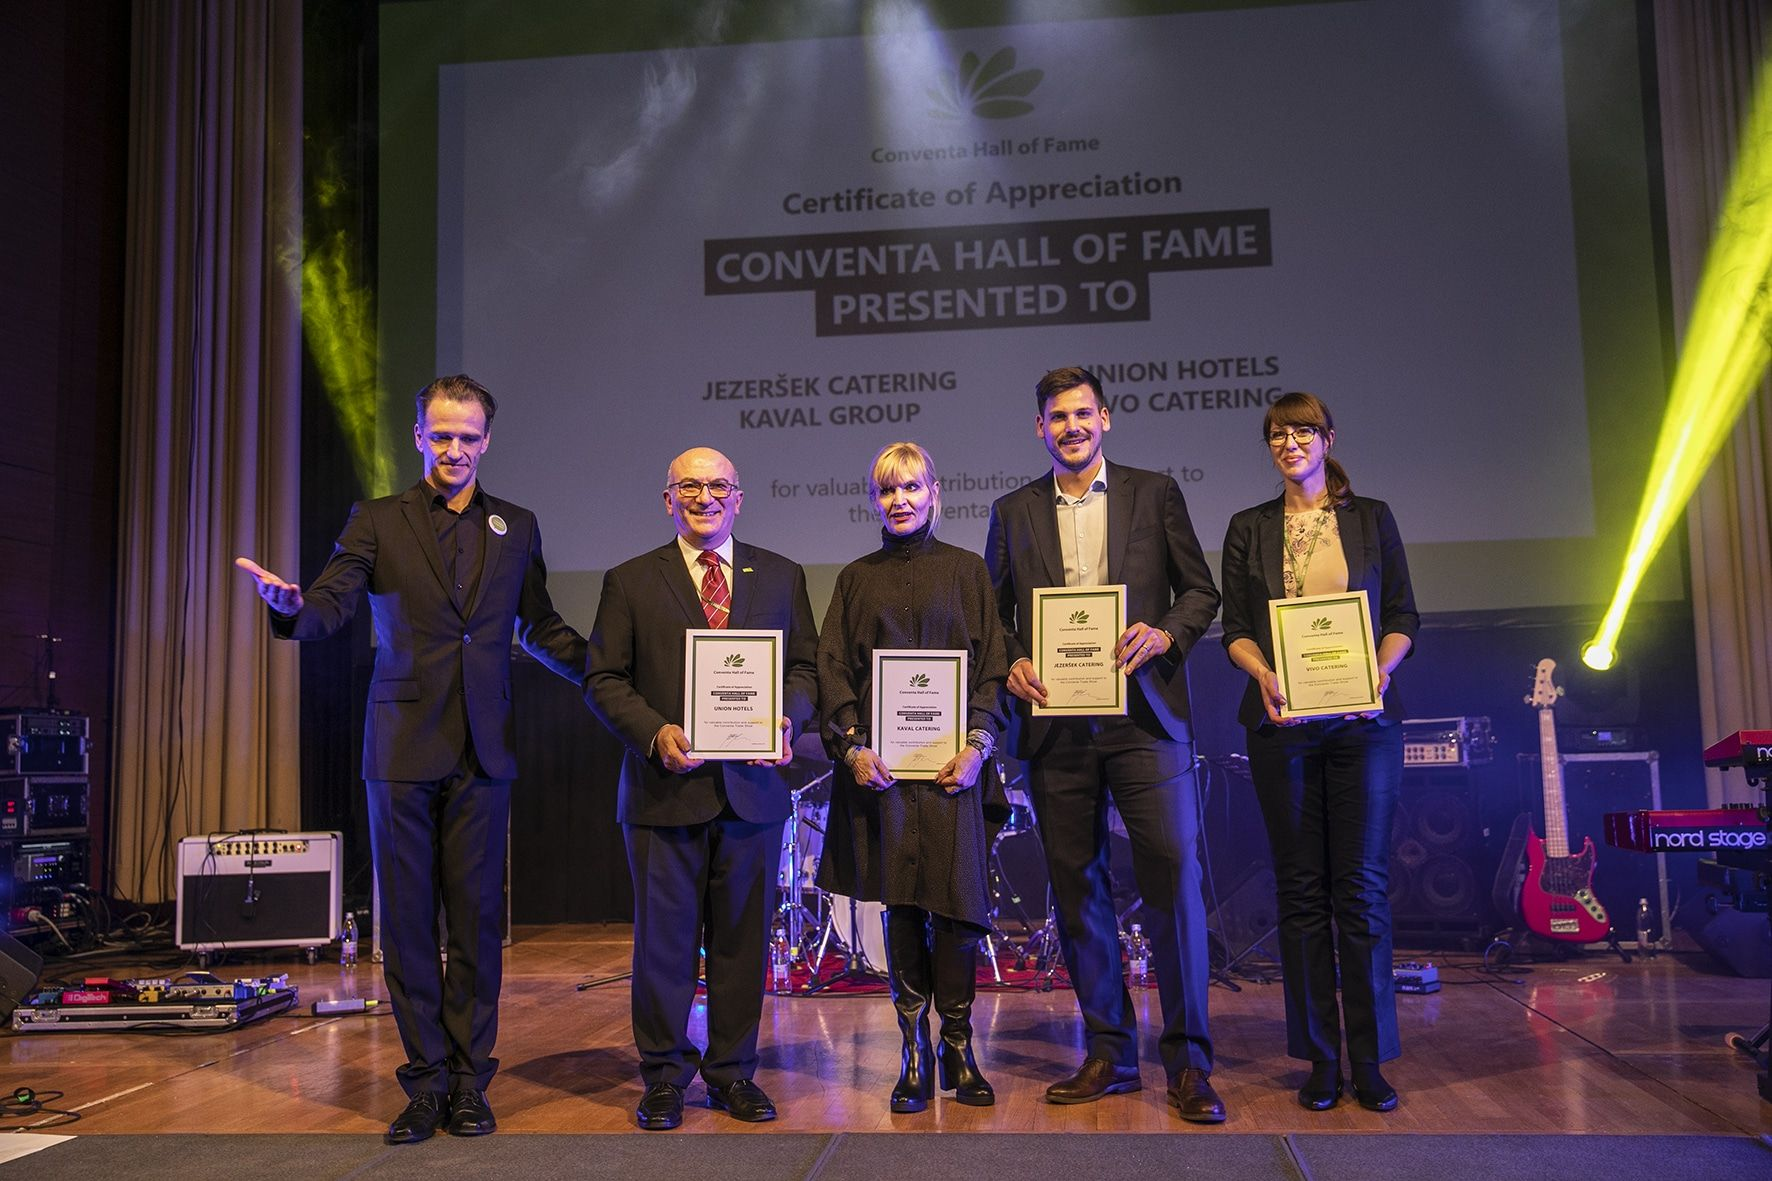 conventa_hall_of_fame